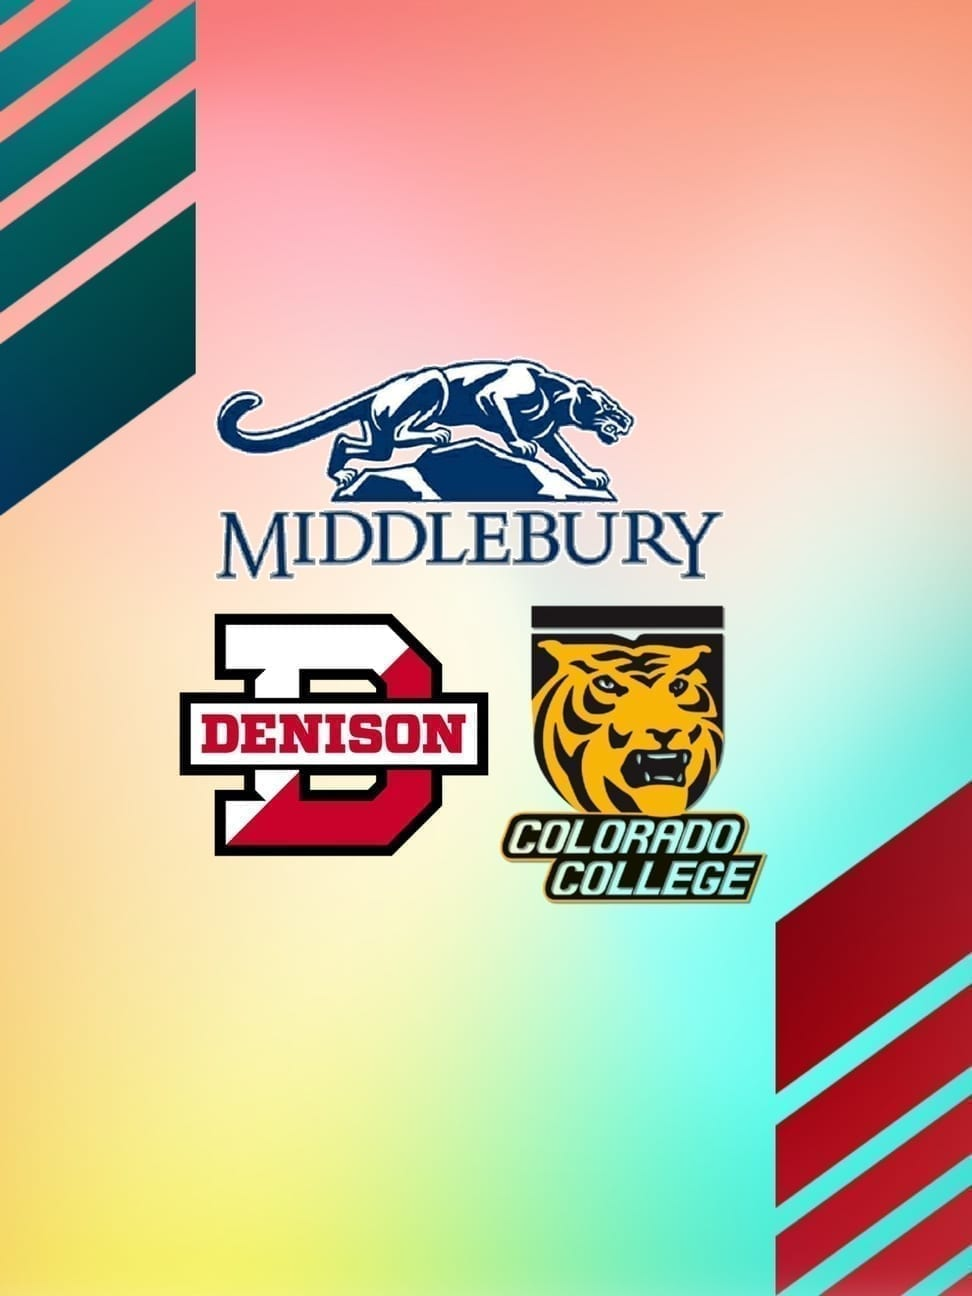 You might know about the biggest names in the sport, but these are some Division III men's lacrosse programs that deserve more love.